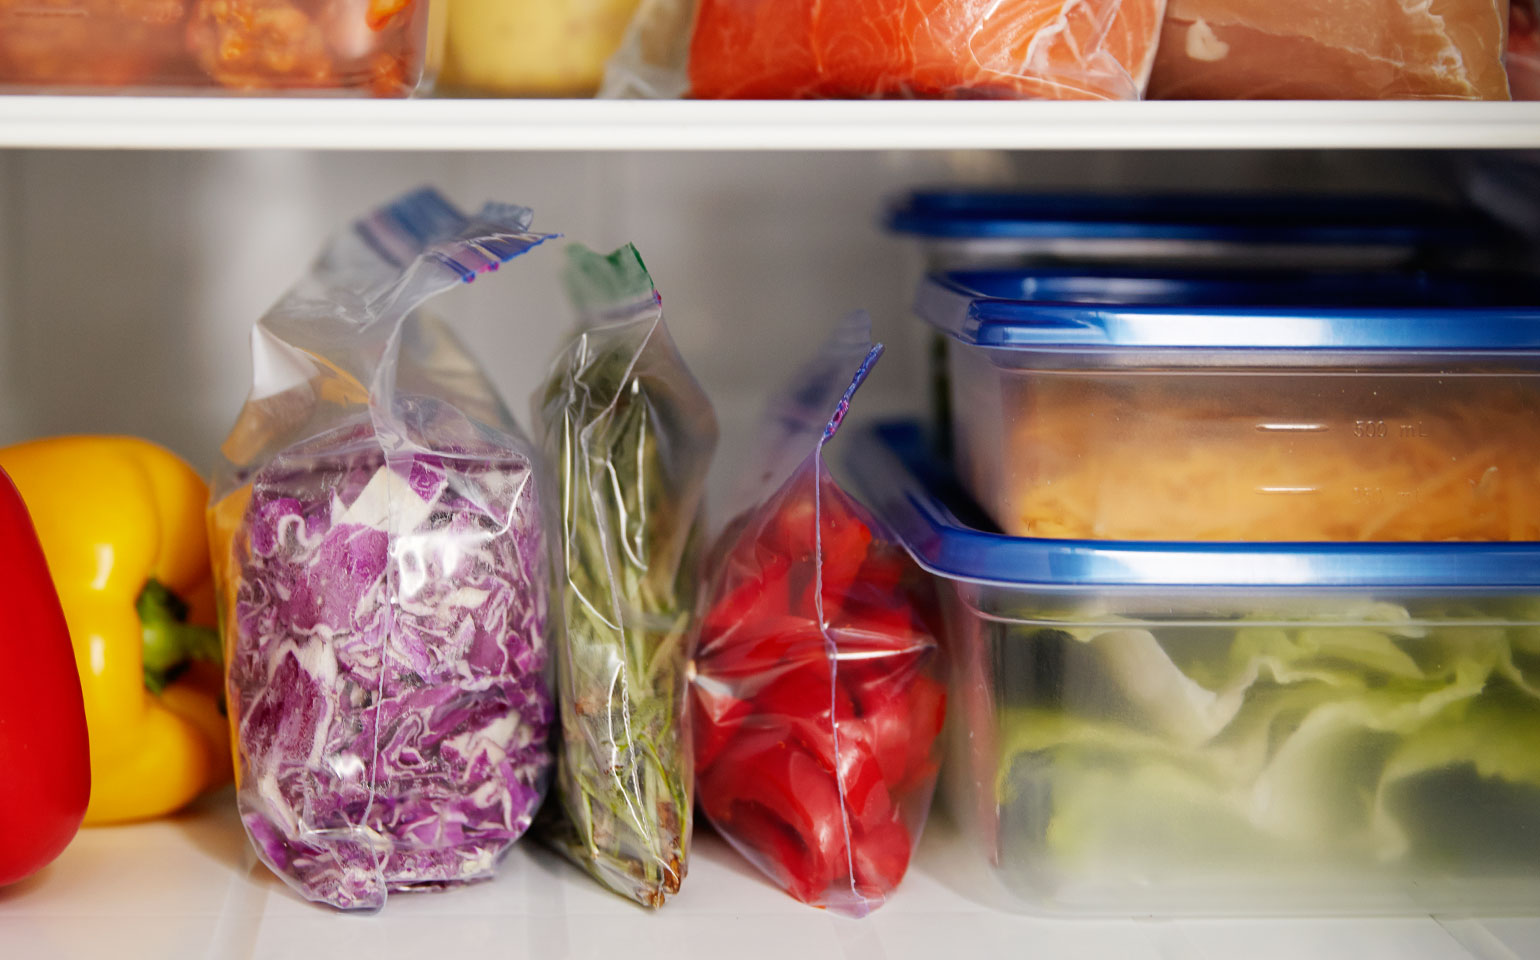 21 Creative Uses For Freezer Bags